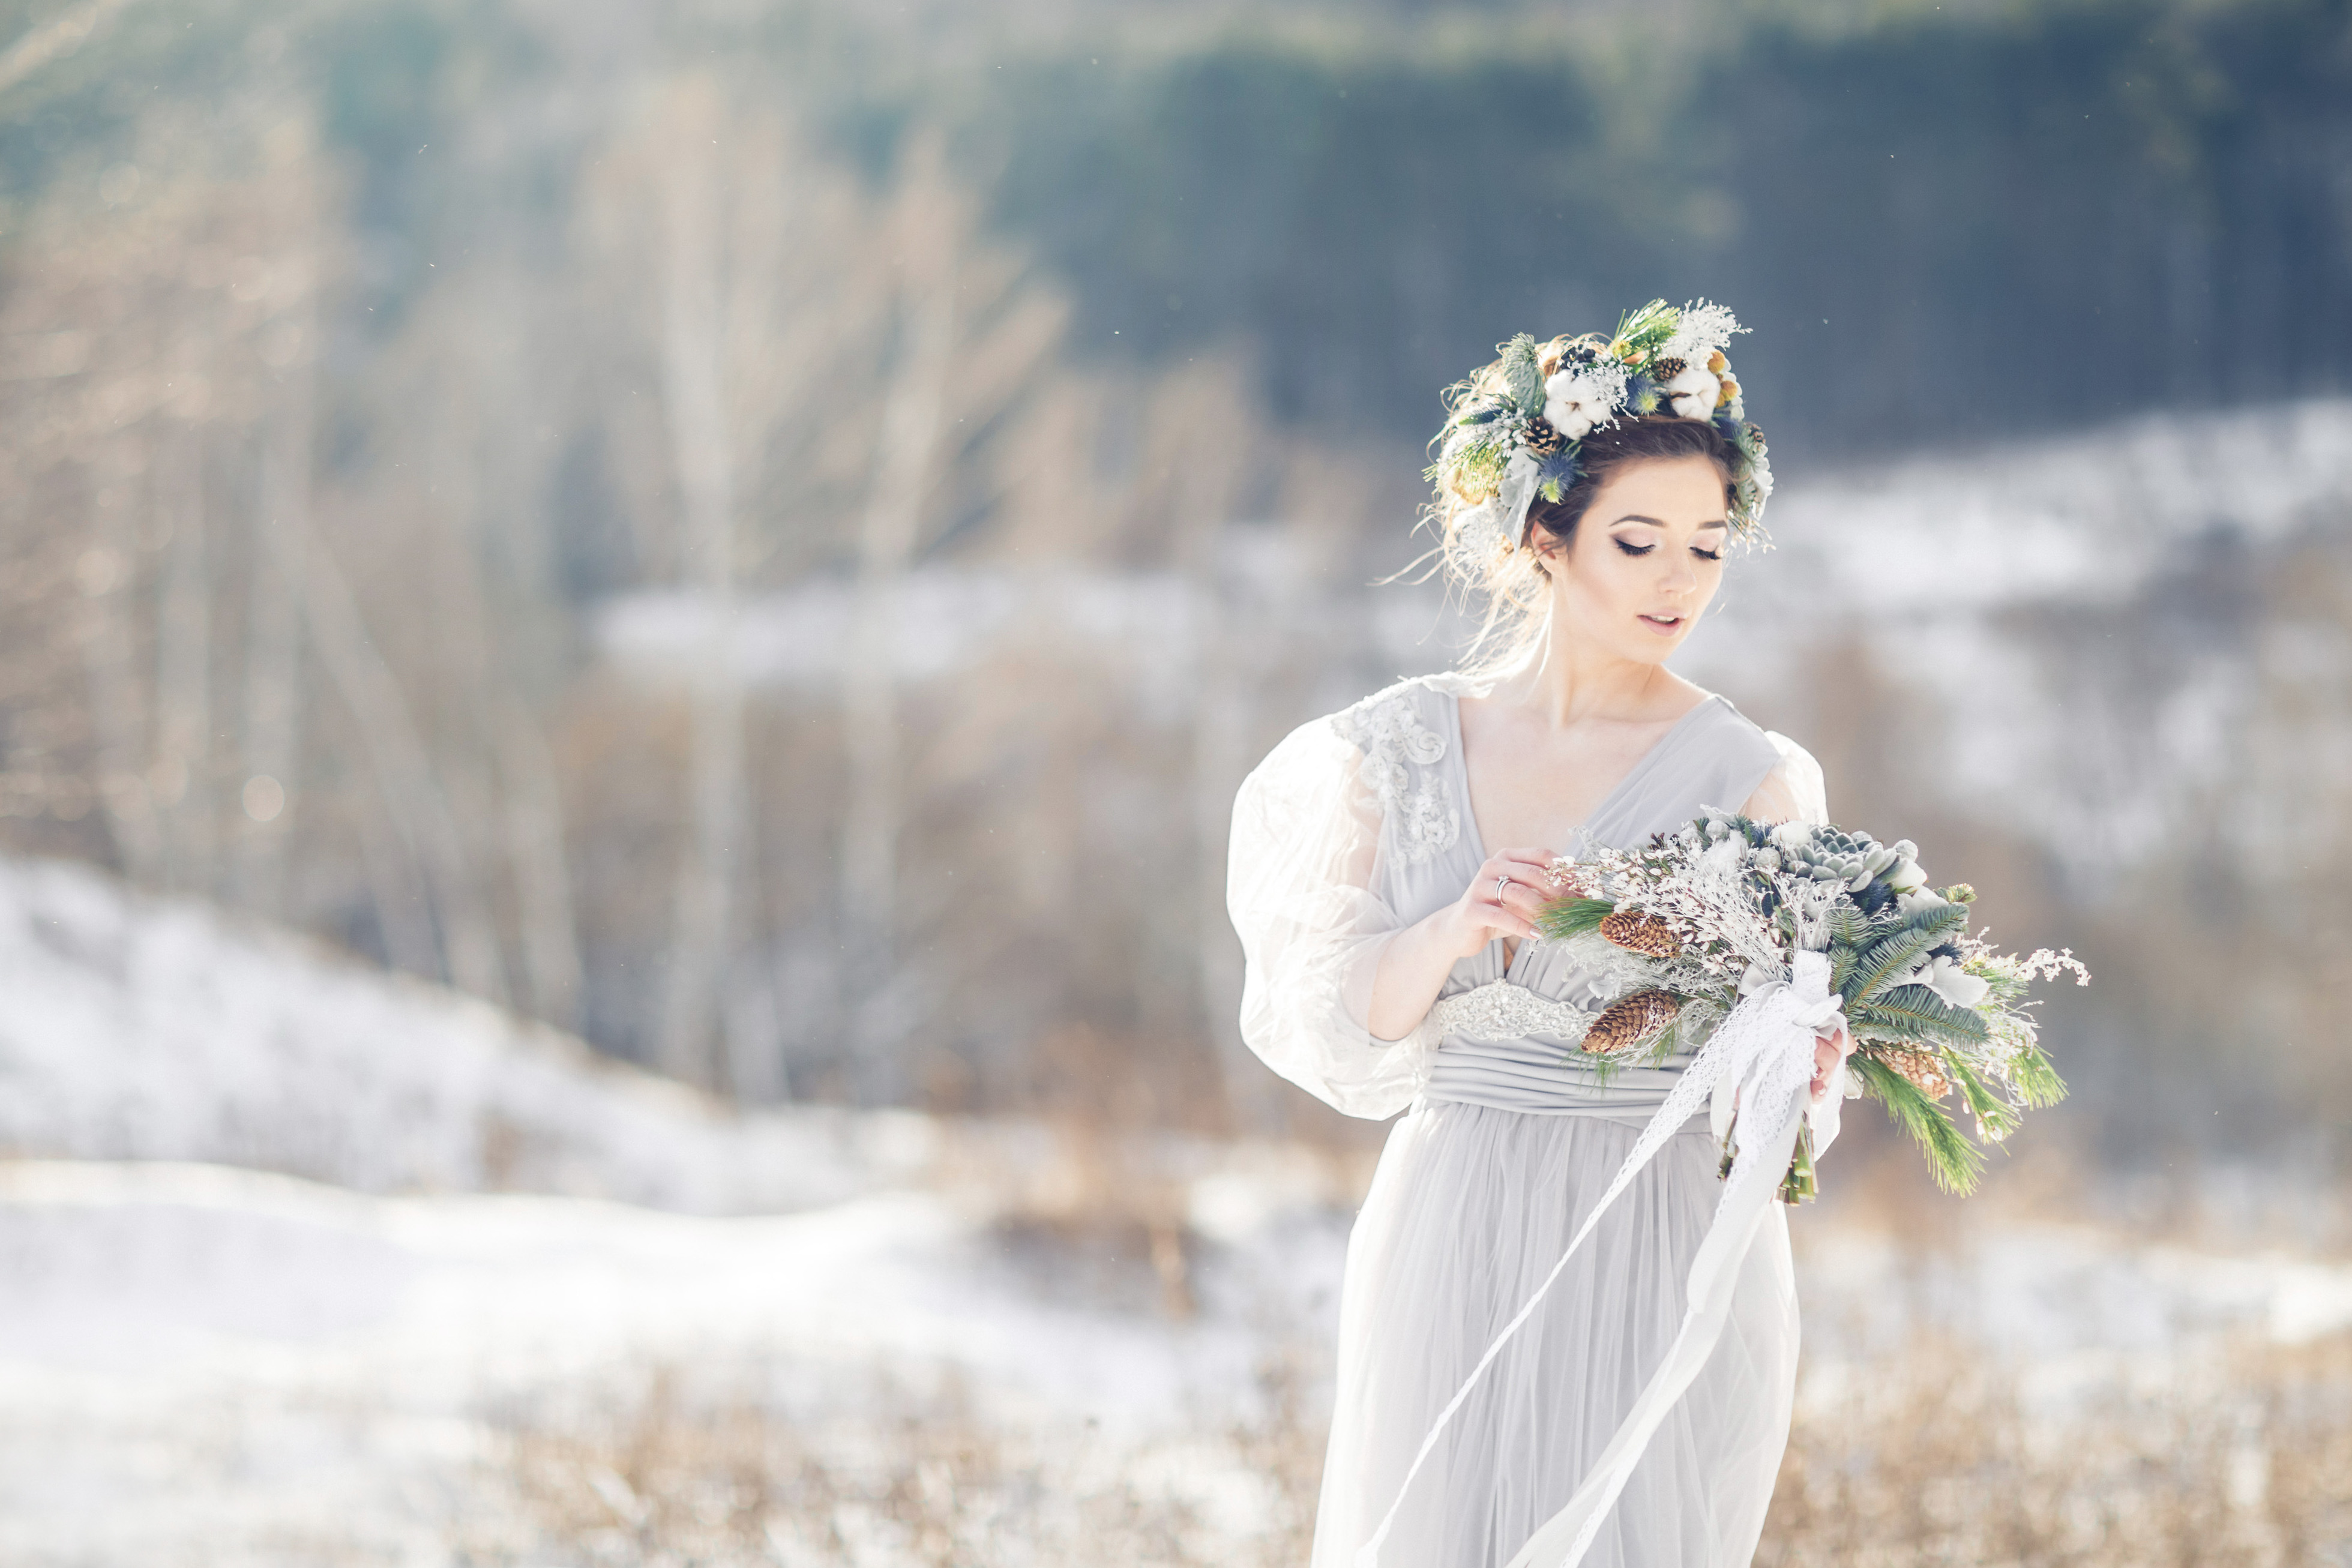 The Best Dates And Times To Get Married In 2019 and 2020 - Make